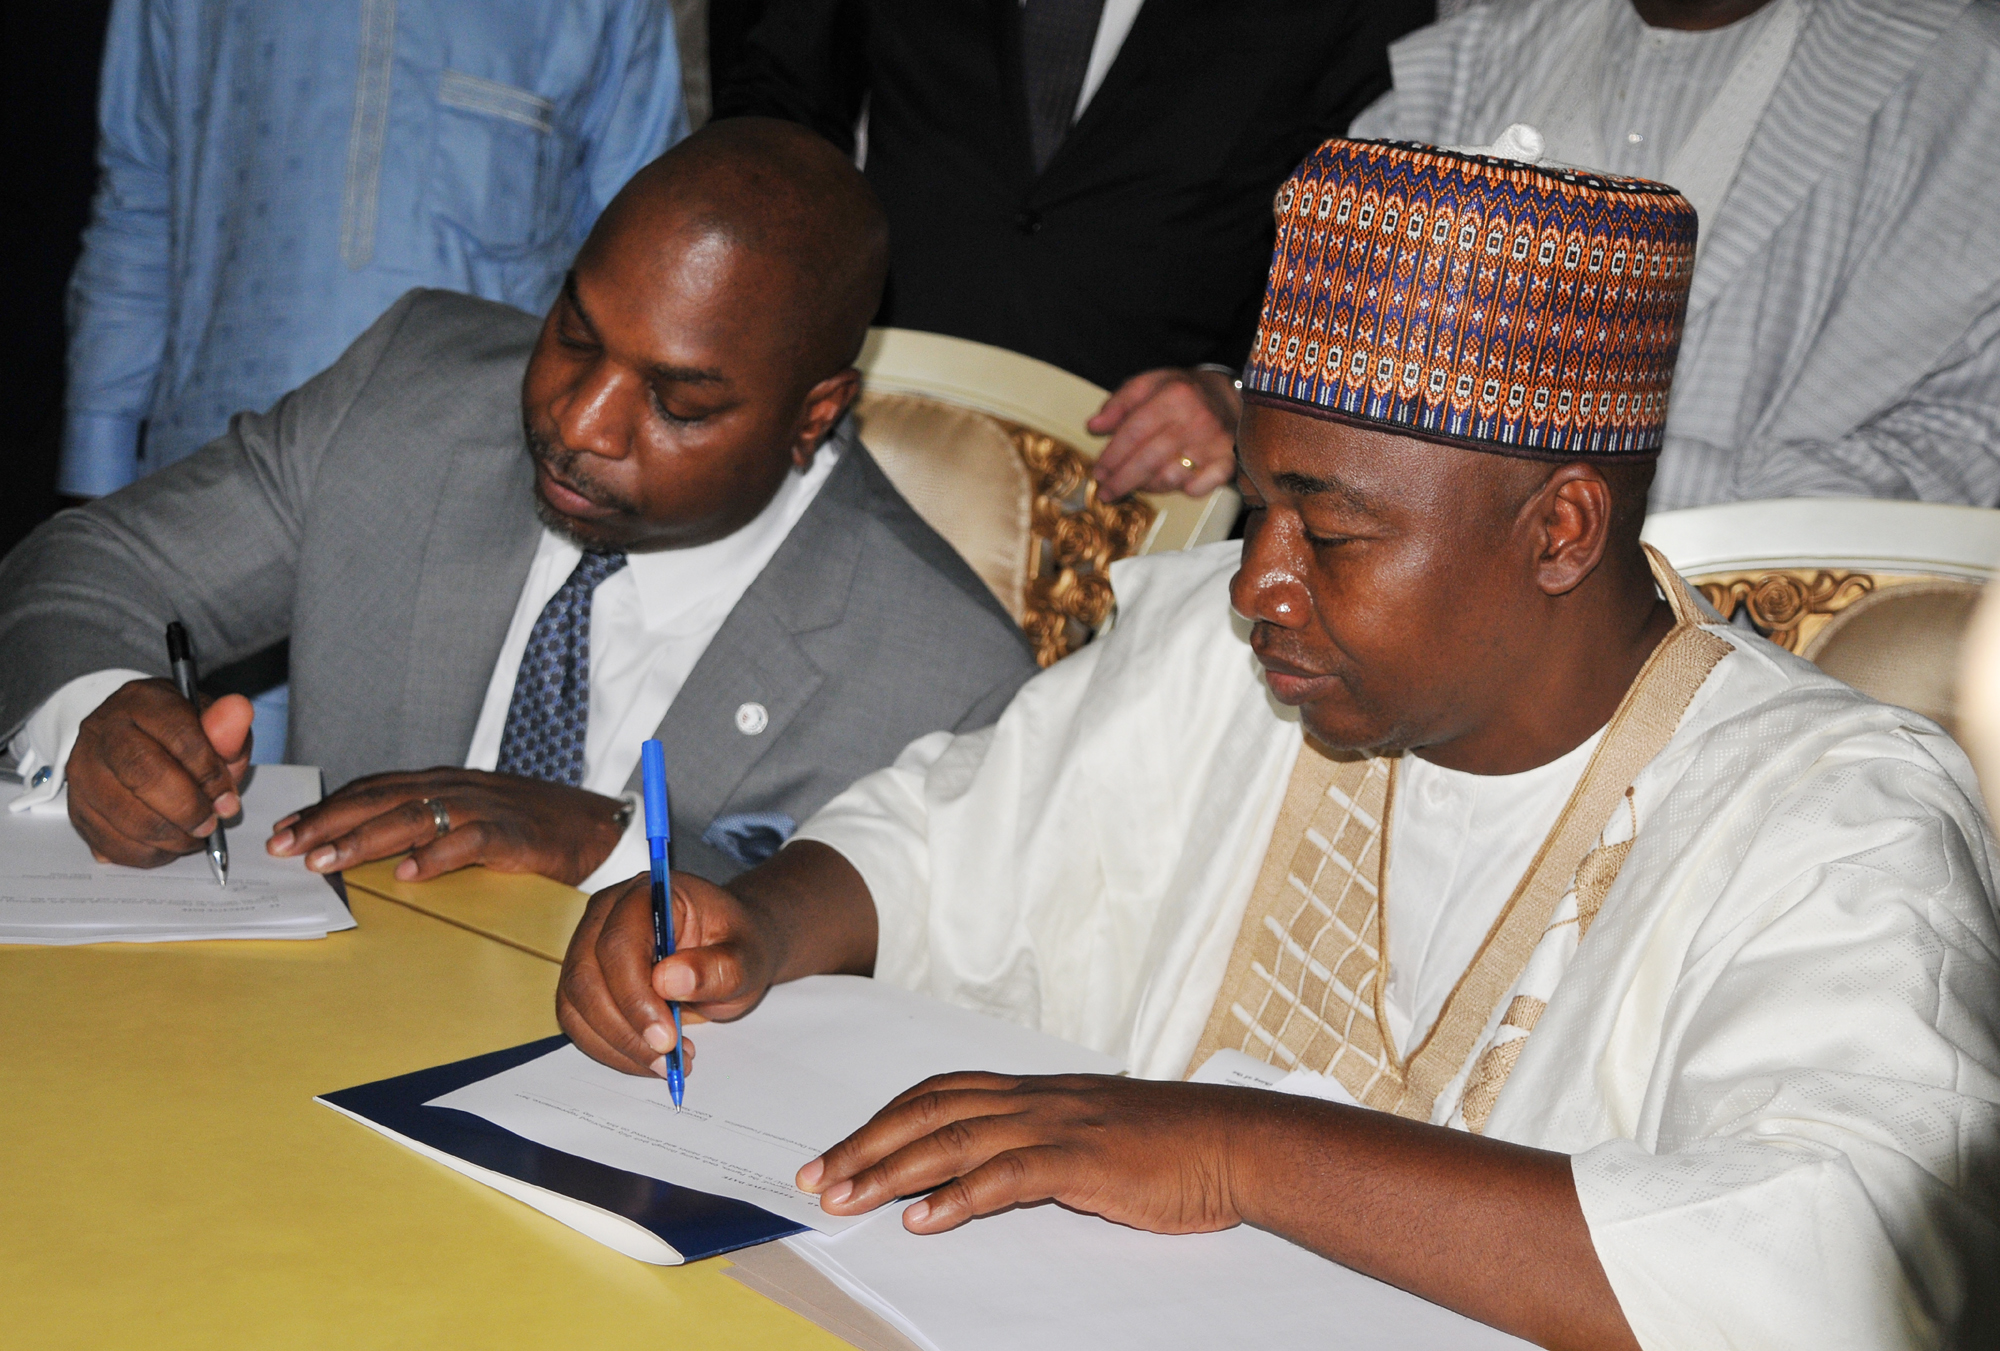 The President & CEO of U.S. African Development Foundation (USADF) and the Governor of Kebbi State, Nigeria signed a 5-year, $10 million dollar Memorandum of Understanding (MOU).